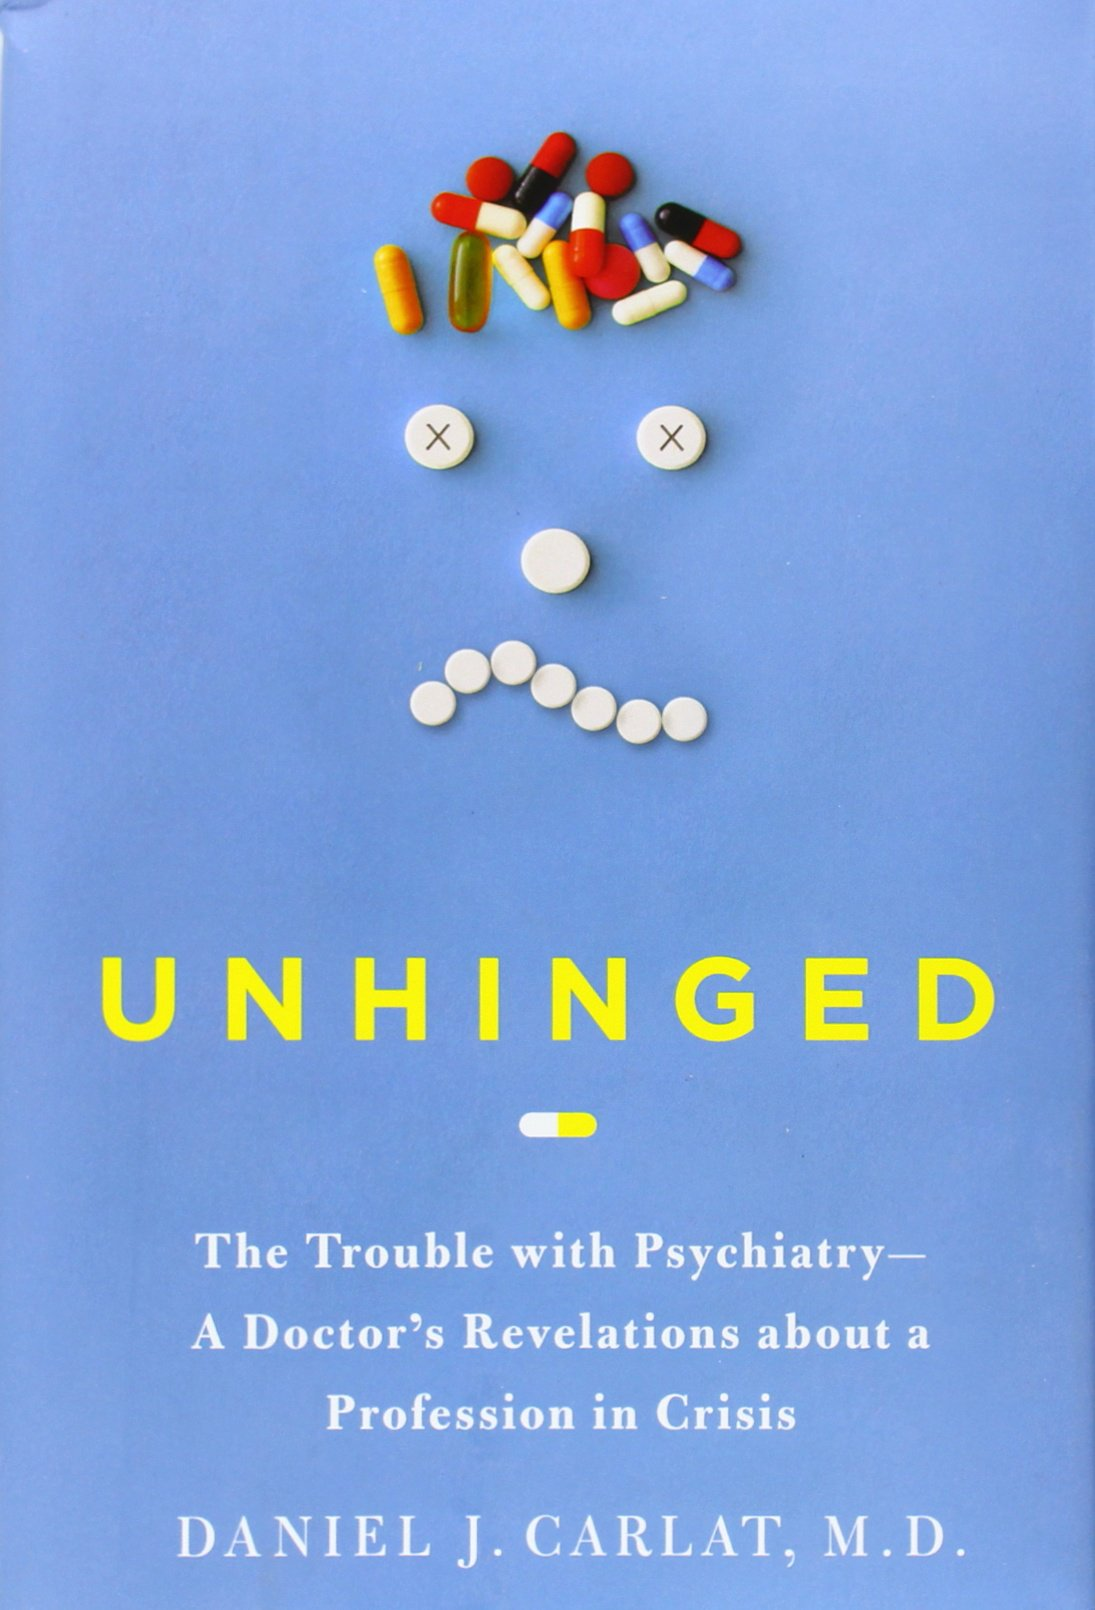 Unhinged: The Trouble with Psychiatry - A Doctor's